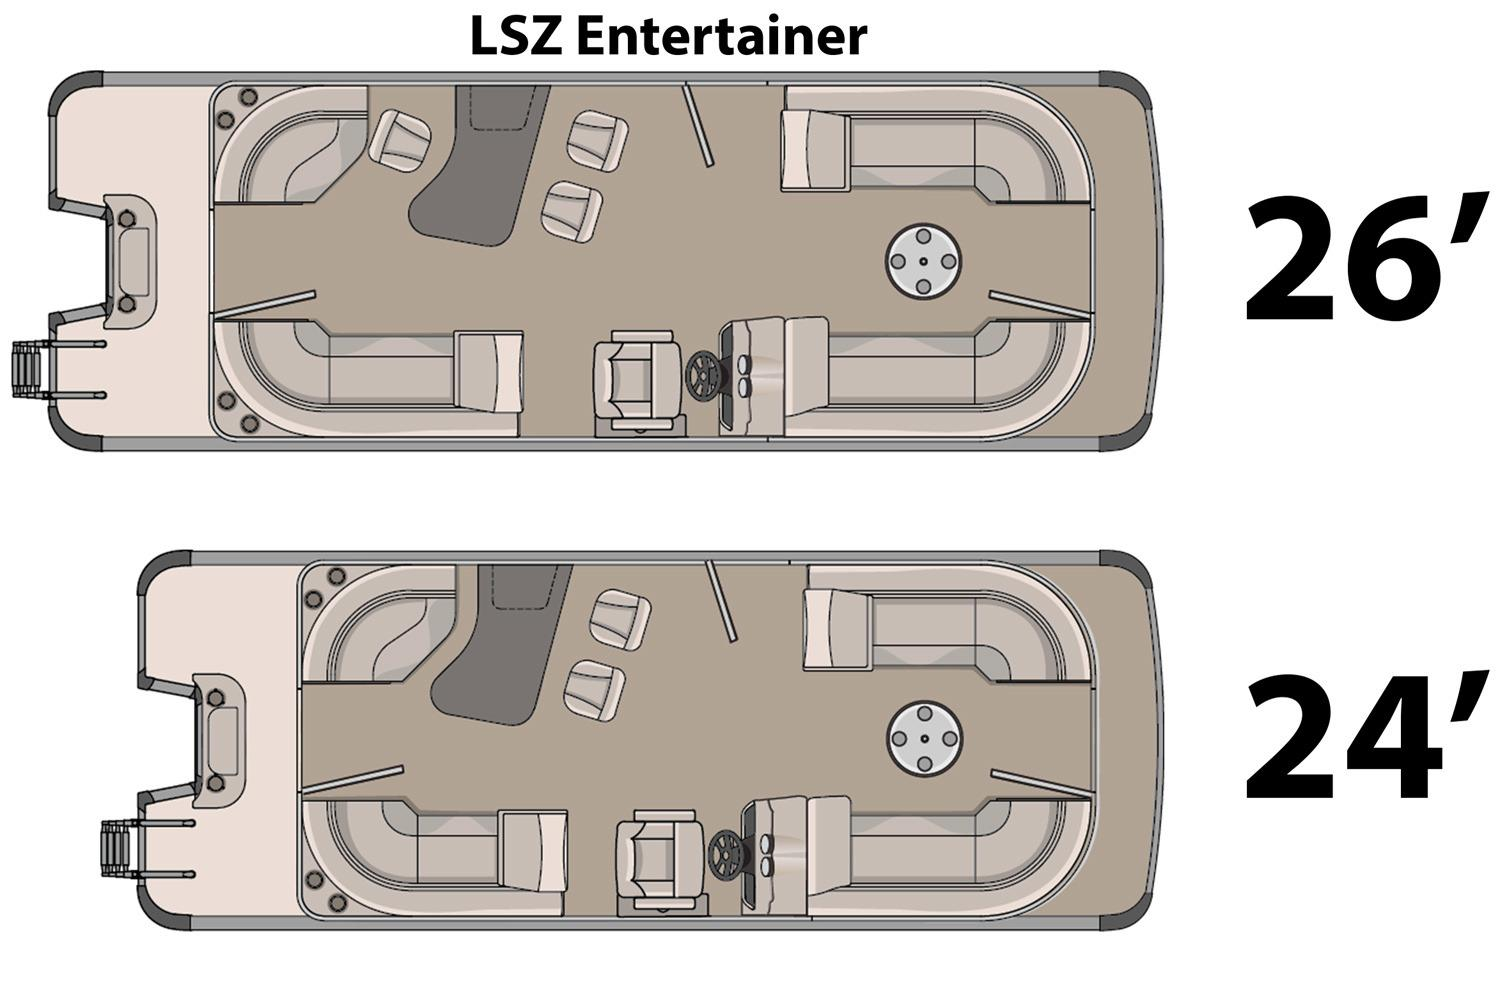 2016 Avalon LSZ Entertainer - 24' in Ontario, California